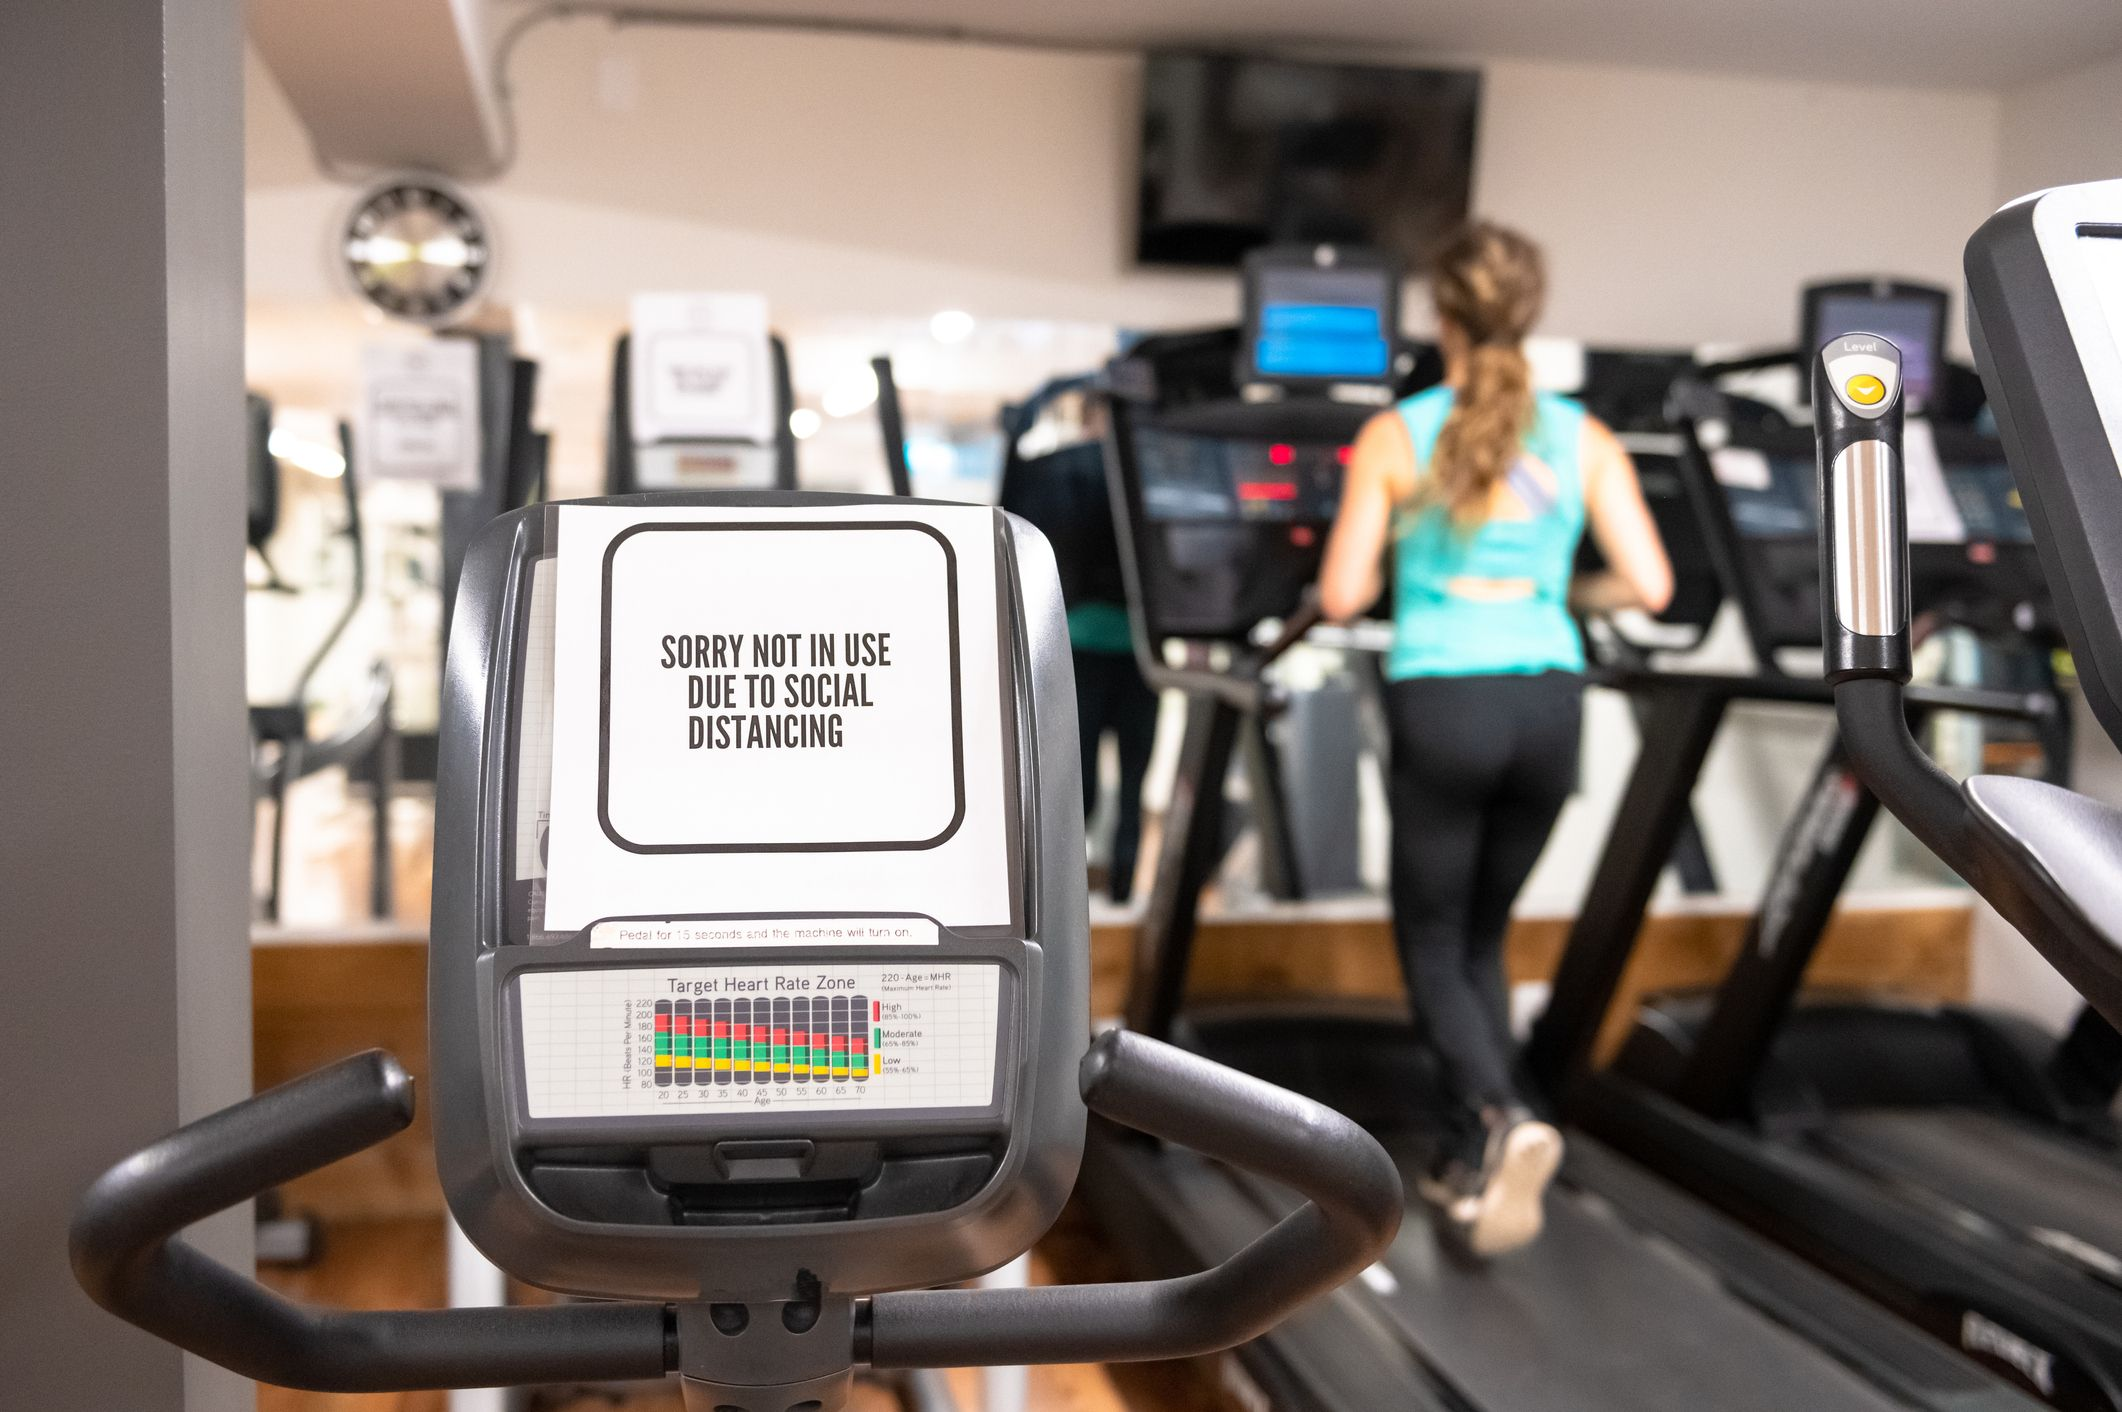 Gyms Might Re-Open Soon. If They Do, Here's How to Stay As Safe as Possible